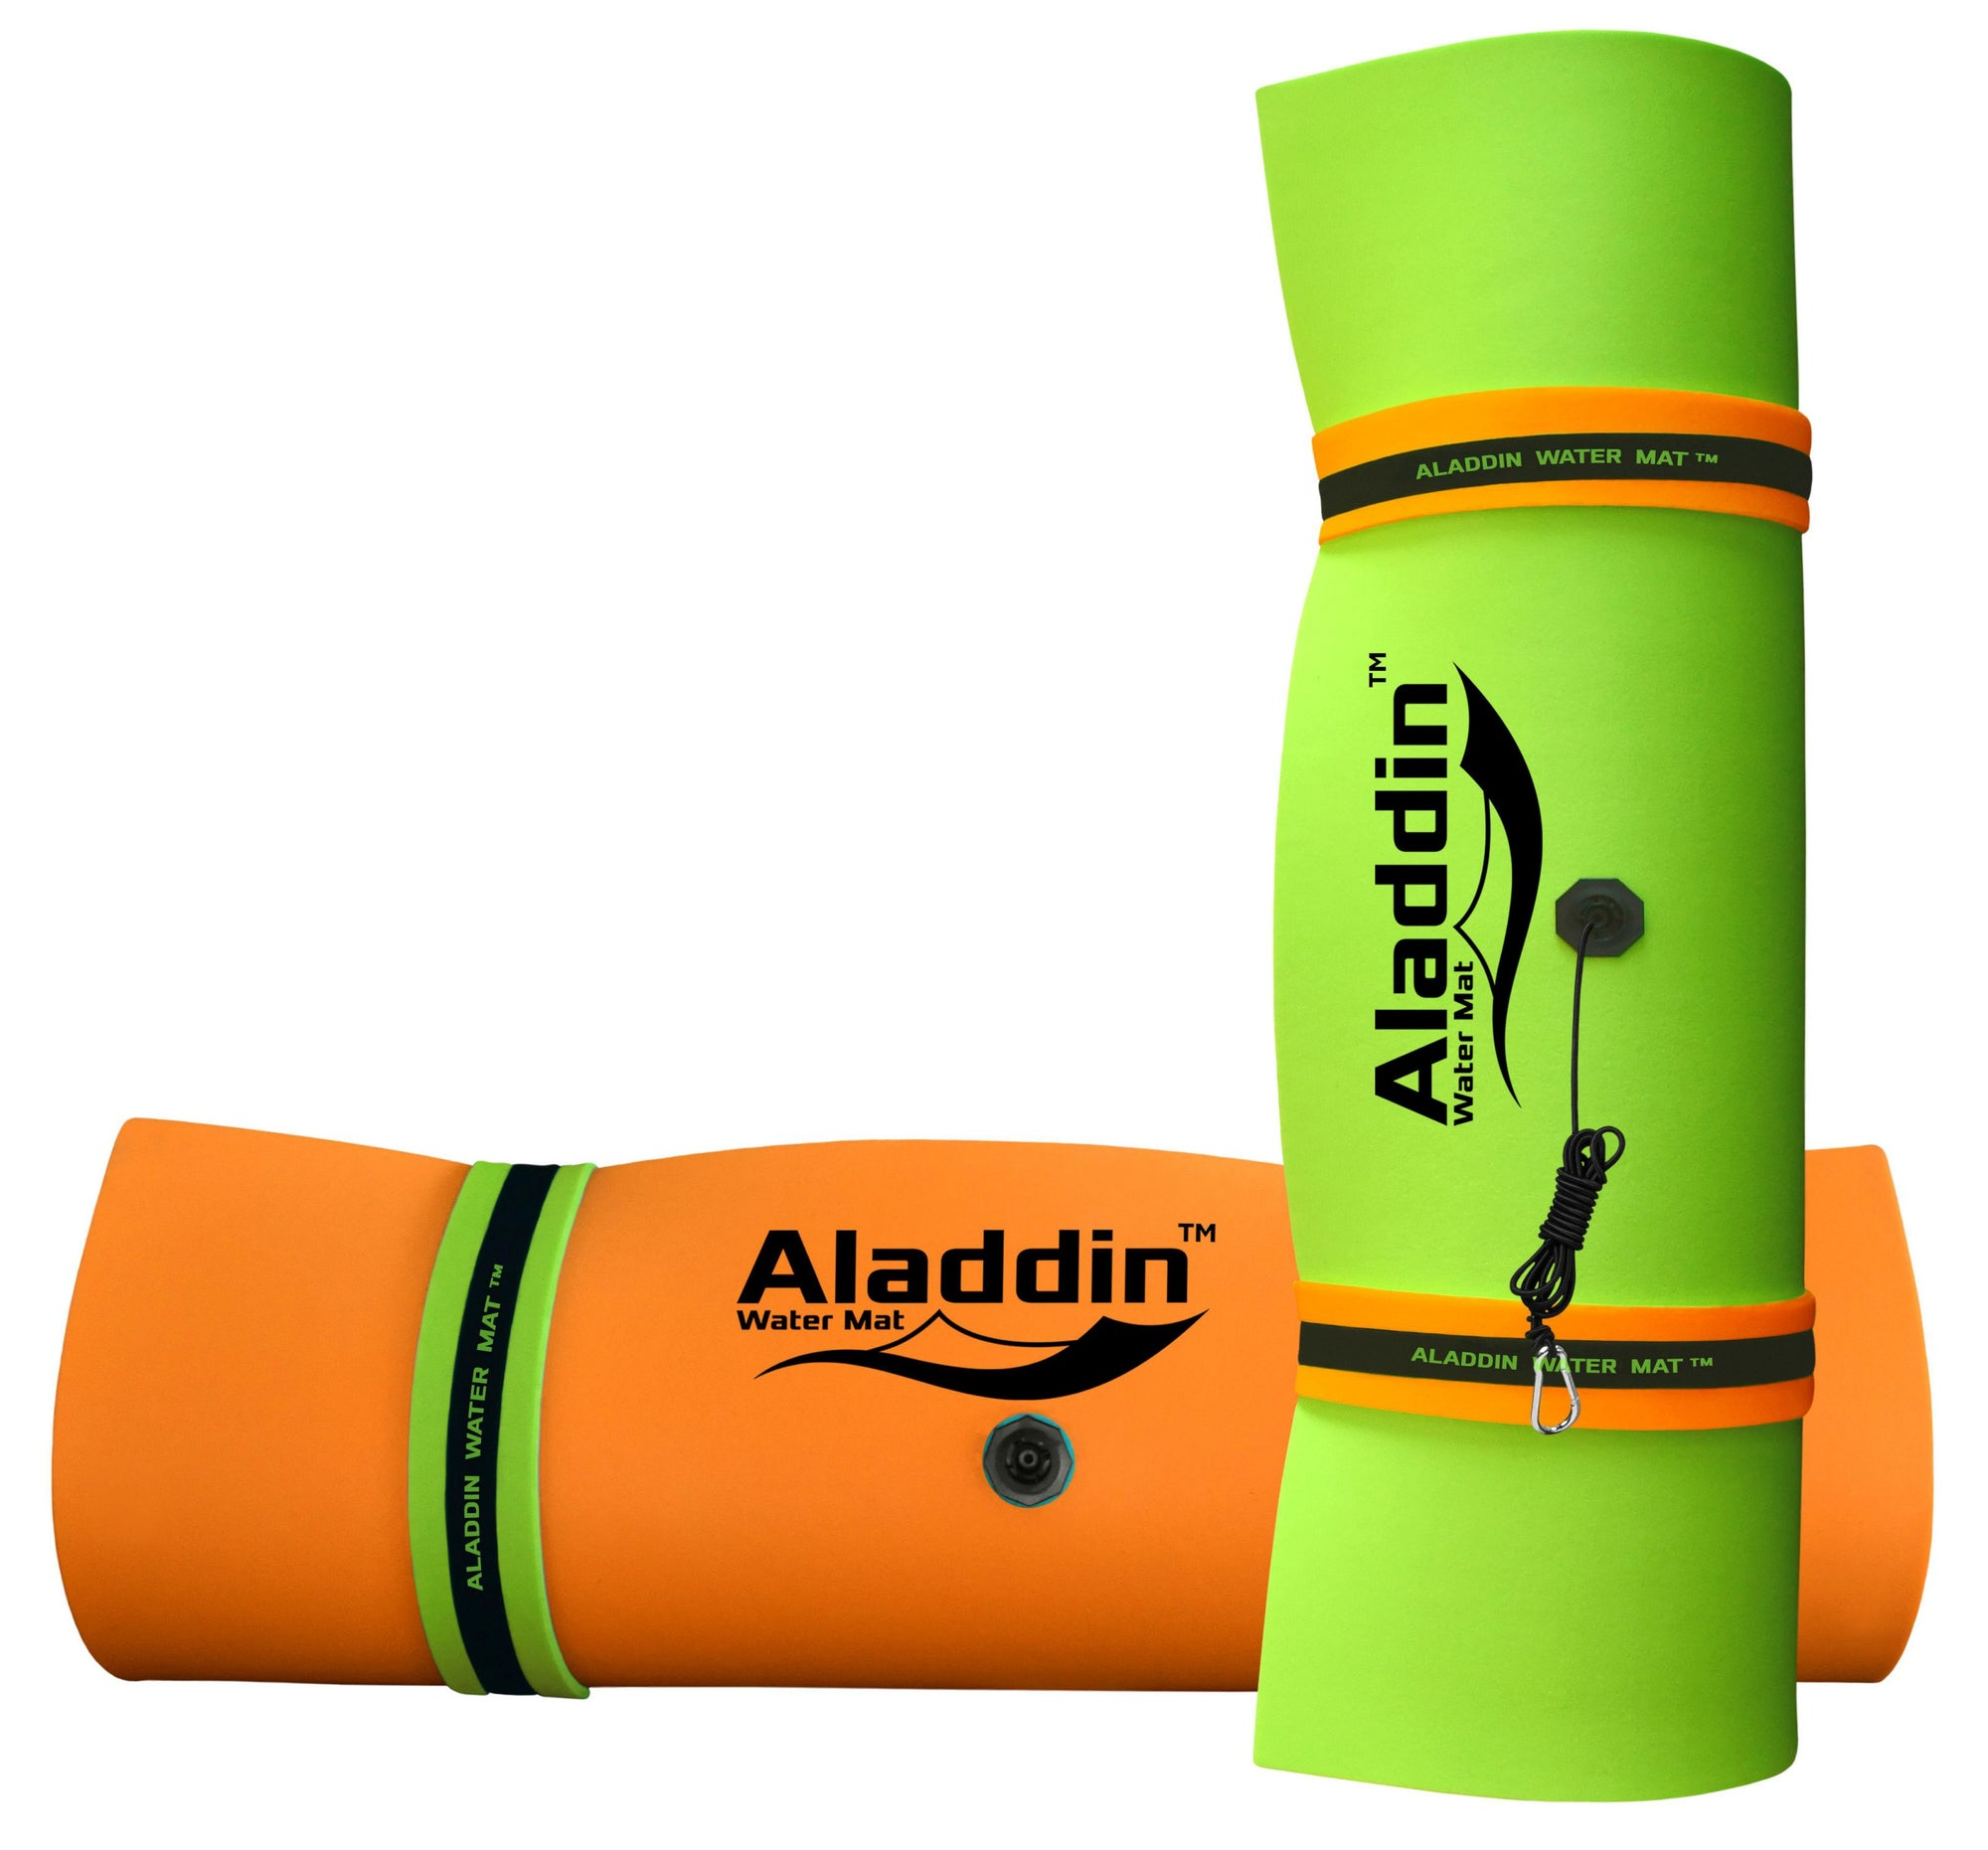 Aladdin Water Mat™ (9x6) Floating Water Mat, Premium Foam (Lime Green/Black/Orange)